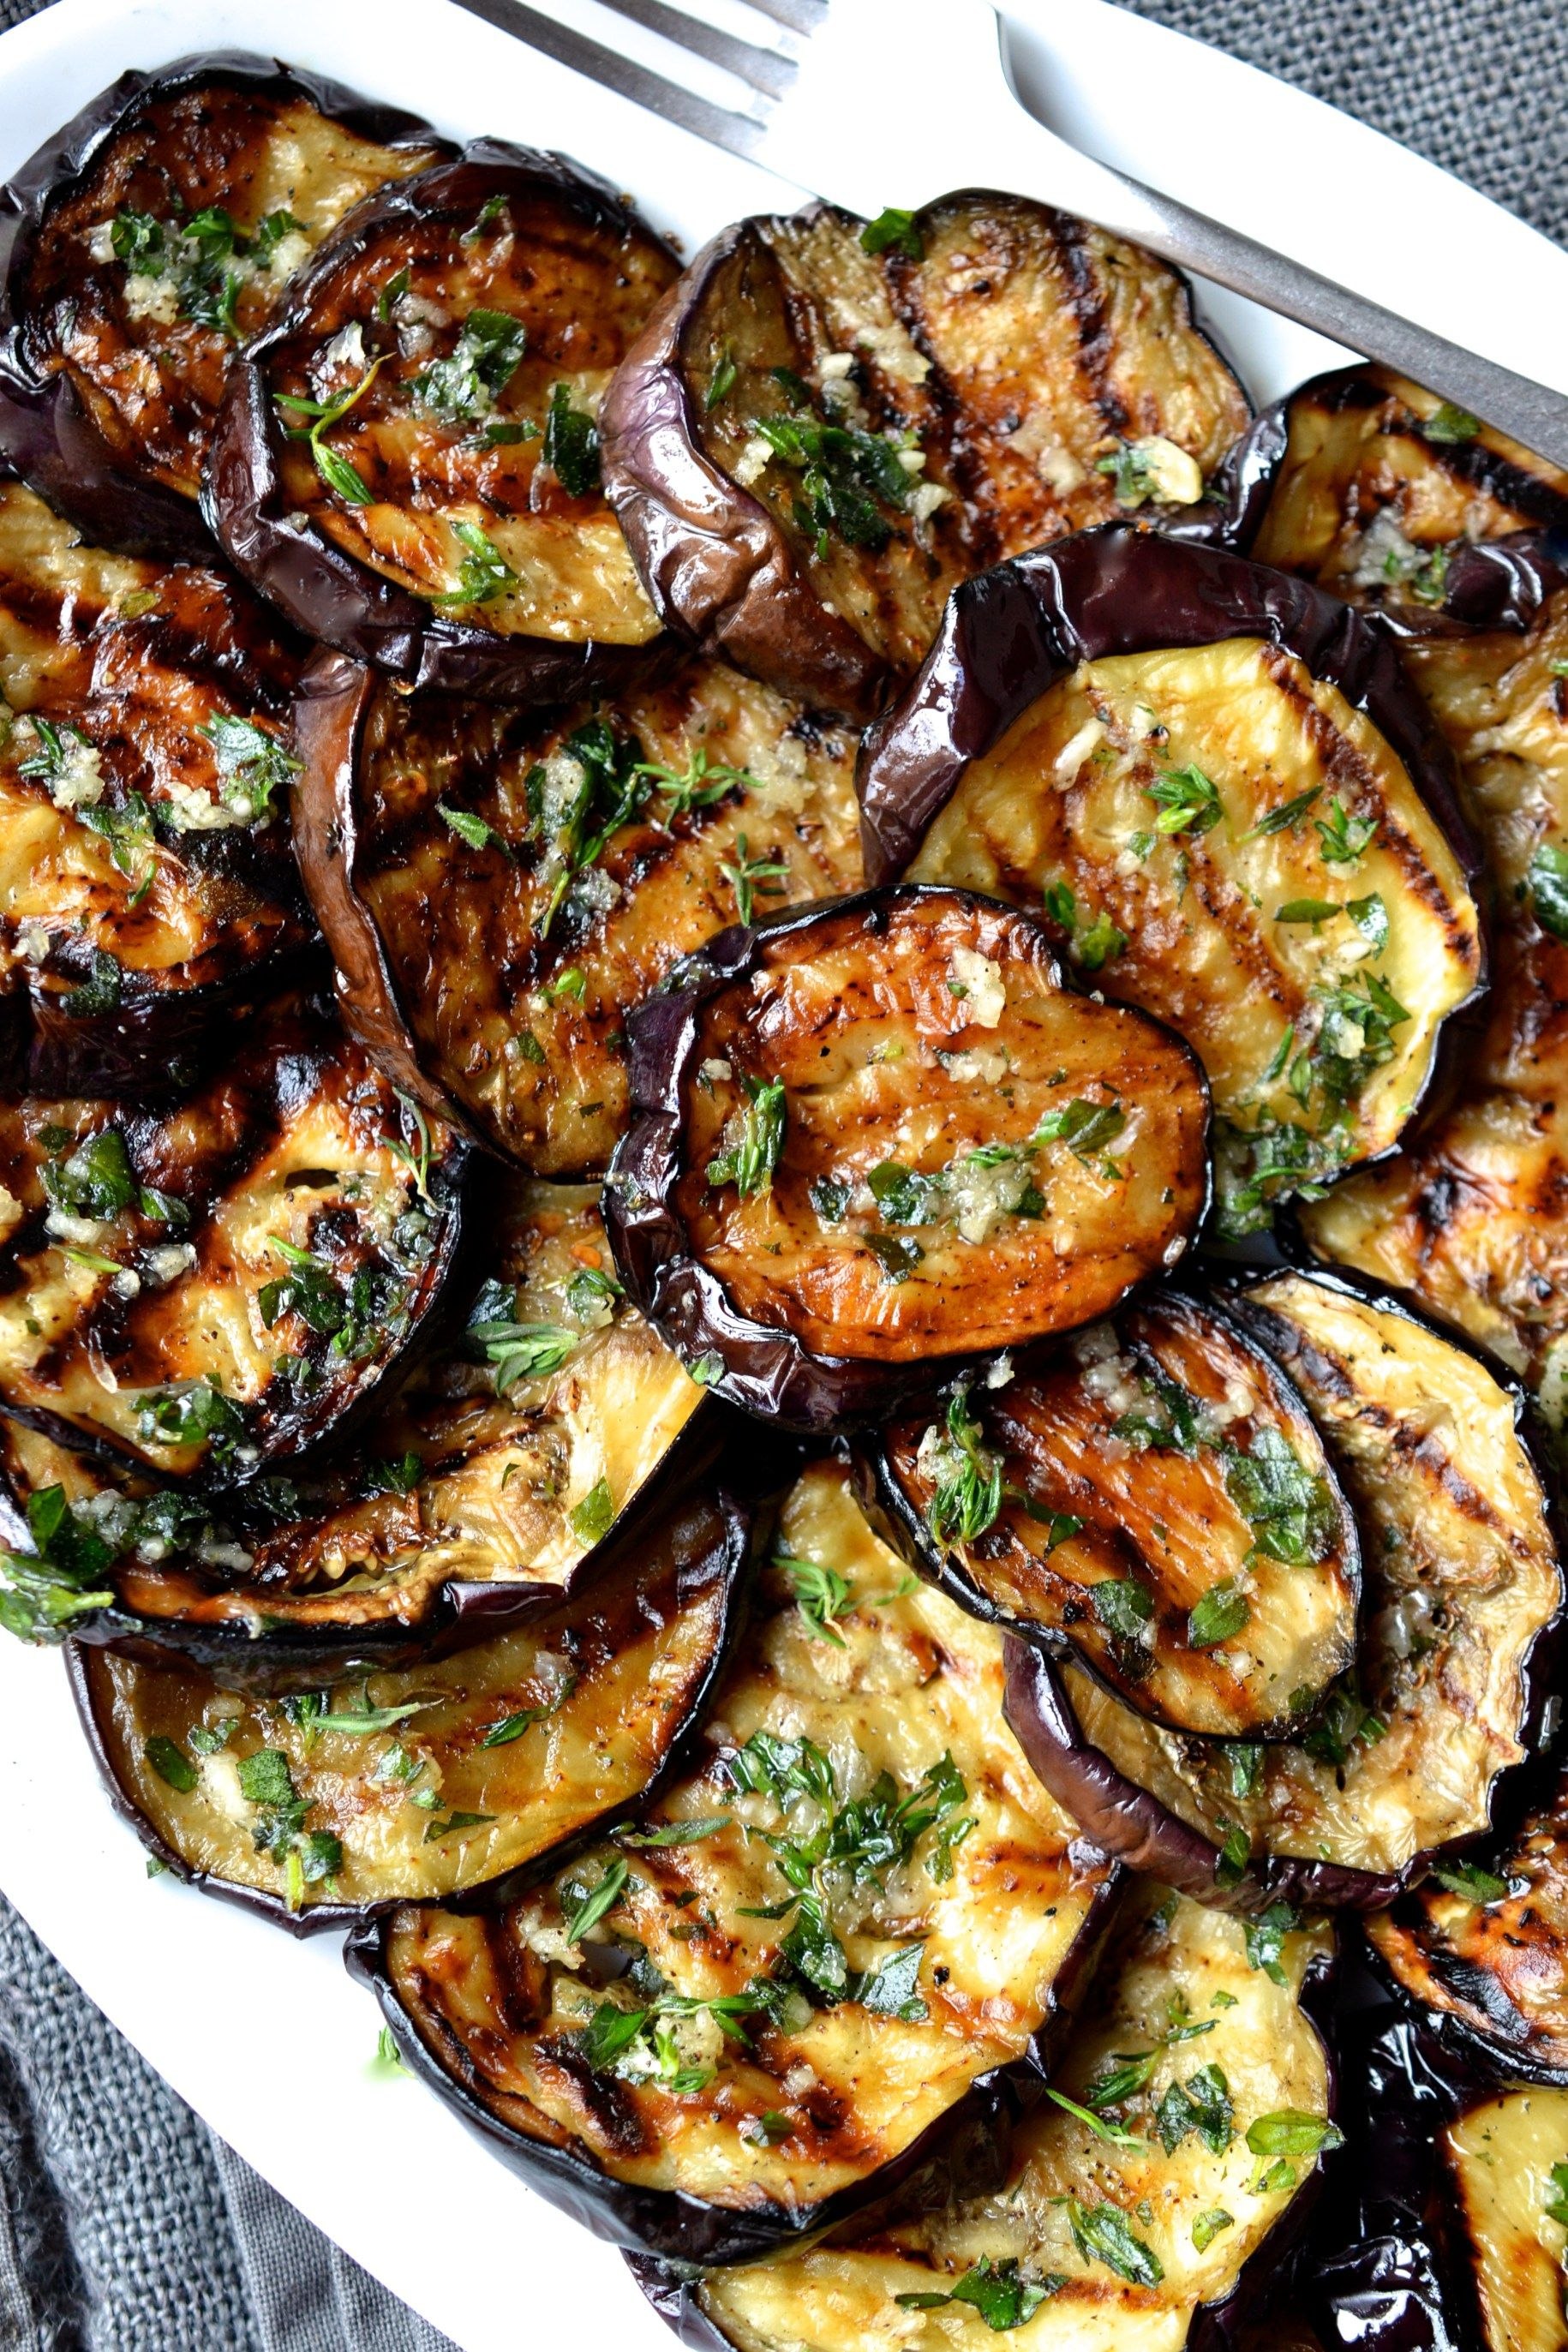 Grilled Eggplant with Garlic & Herbs #grillingrecipes